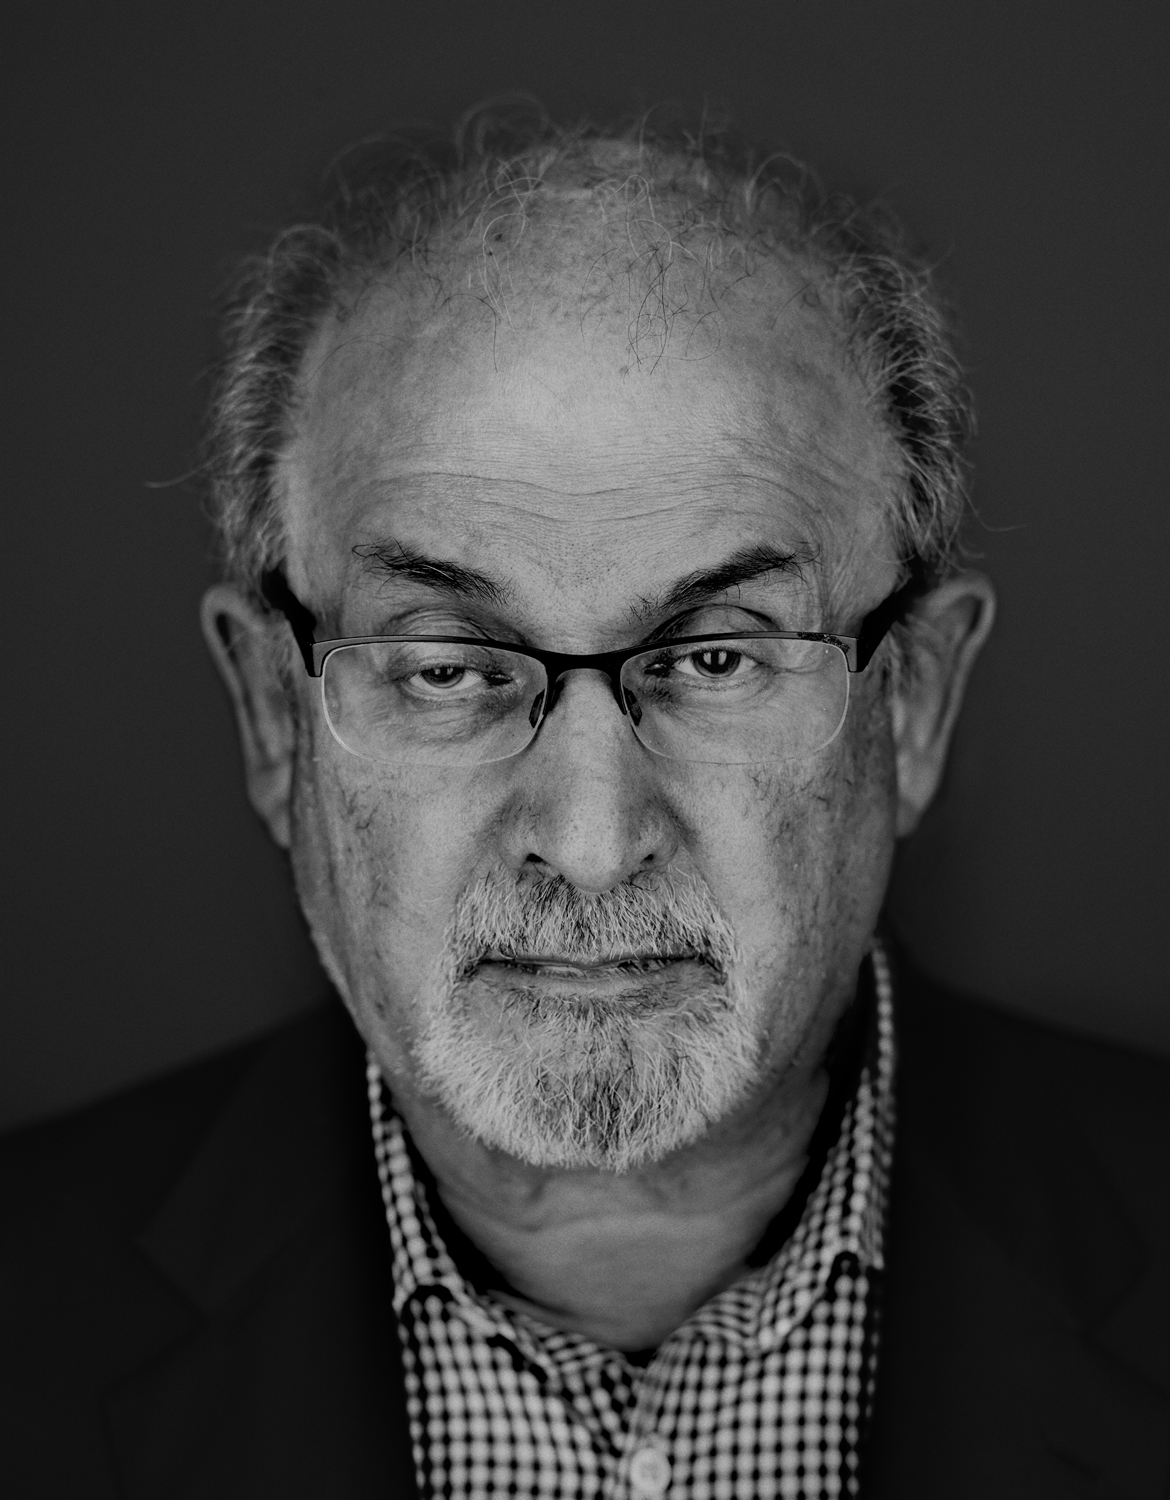 a biography of salman rushdie Anglo-indian author salman rushdie is one of the leading novelists of the twentieth century his style is often likened to magic realism, which mix.